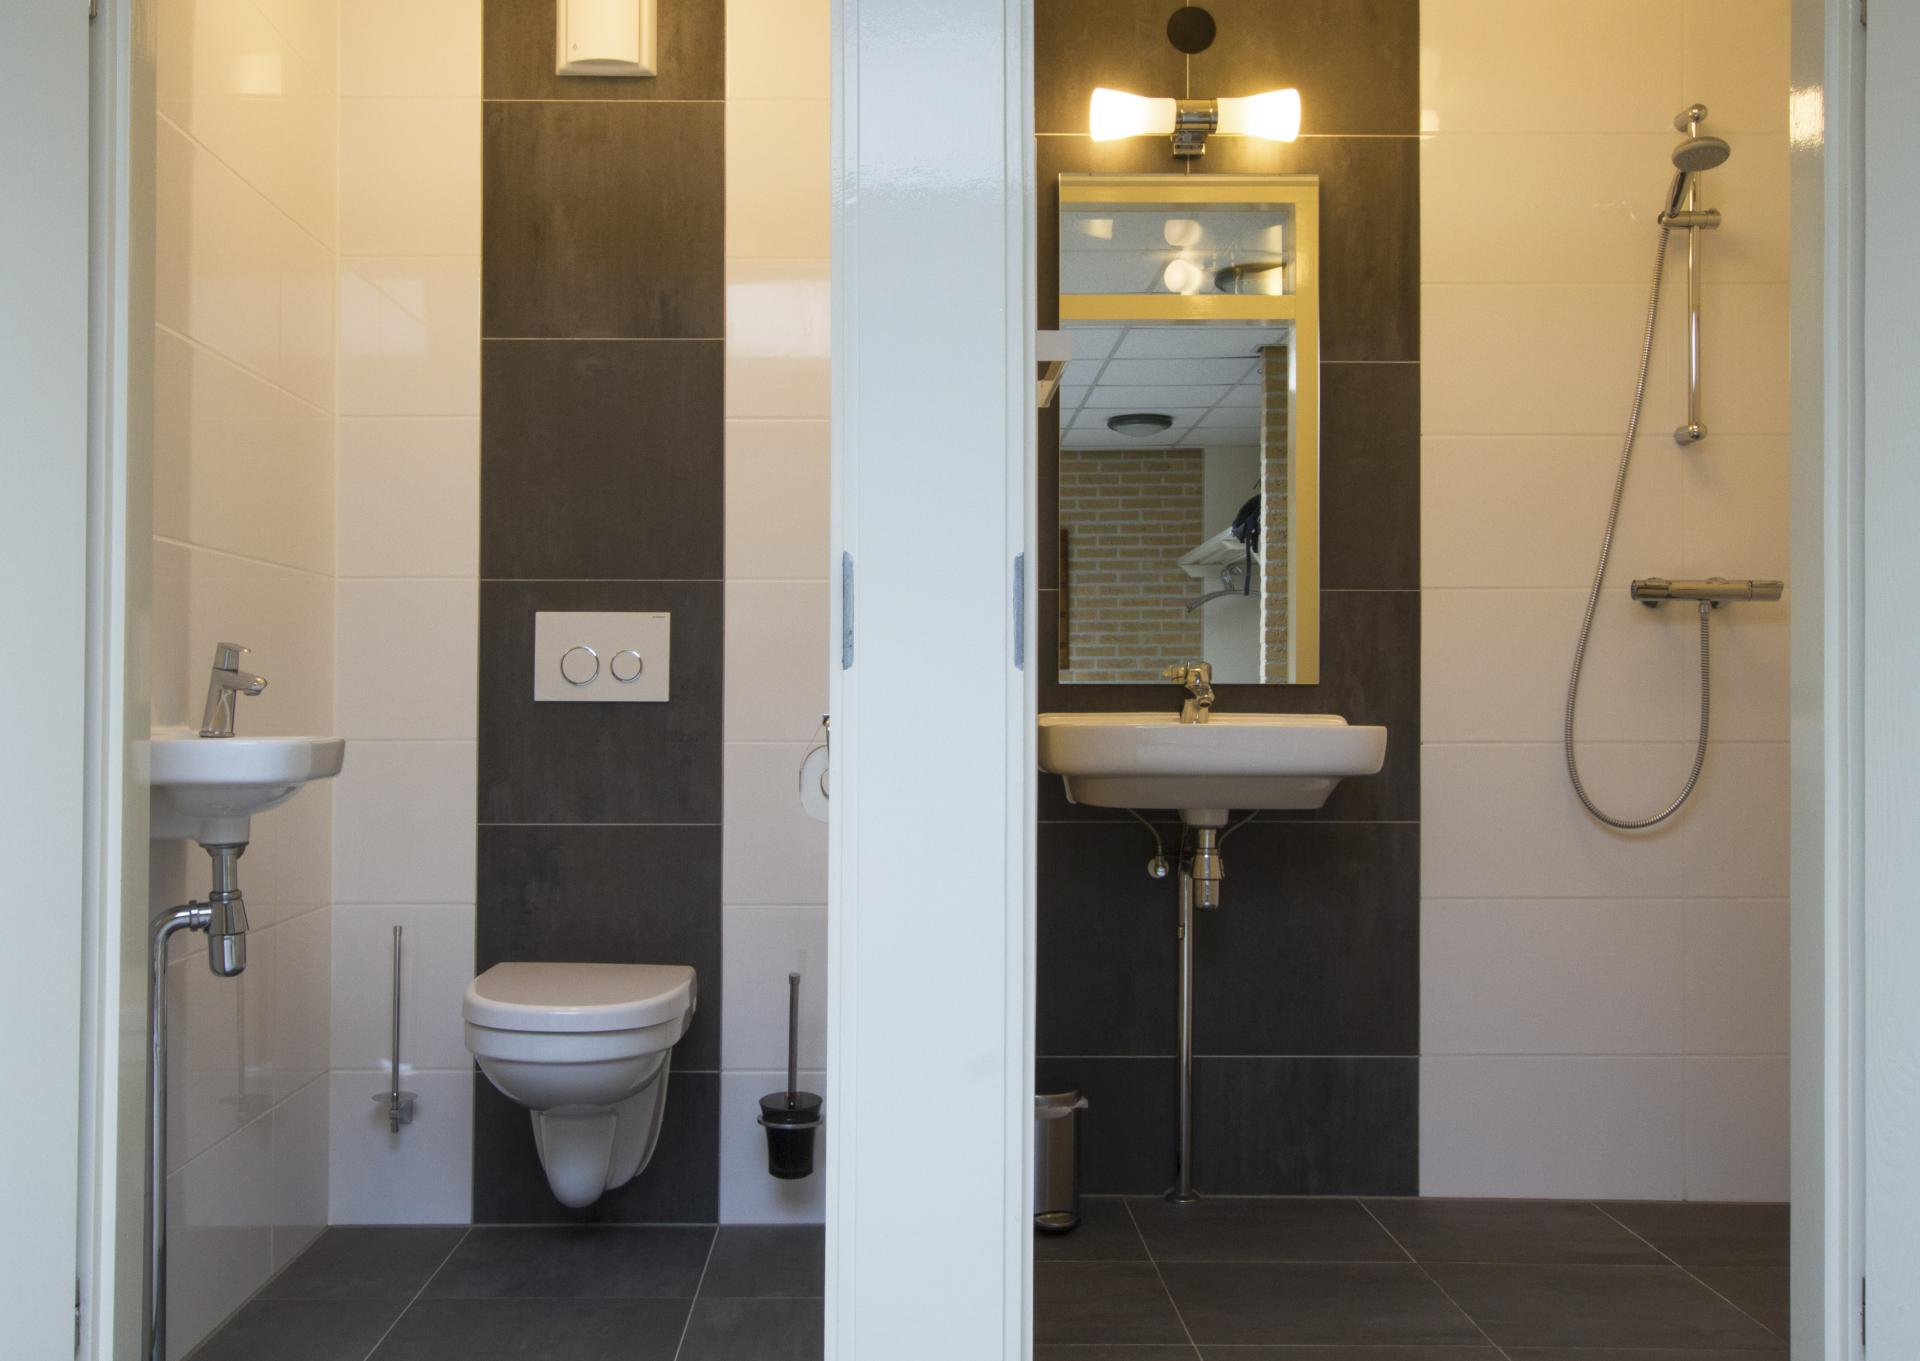 Aparte douche en toilet in de hal